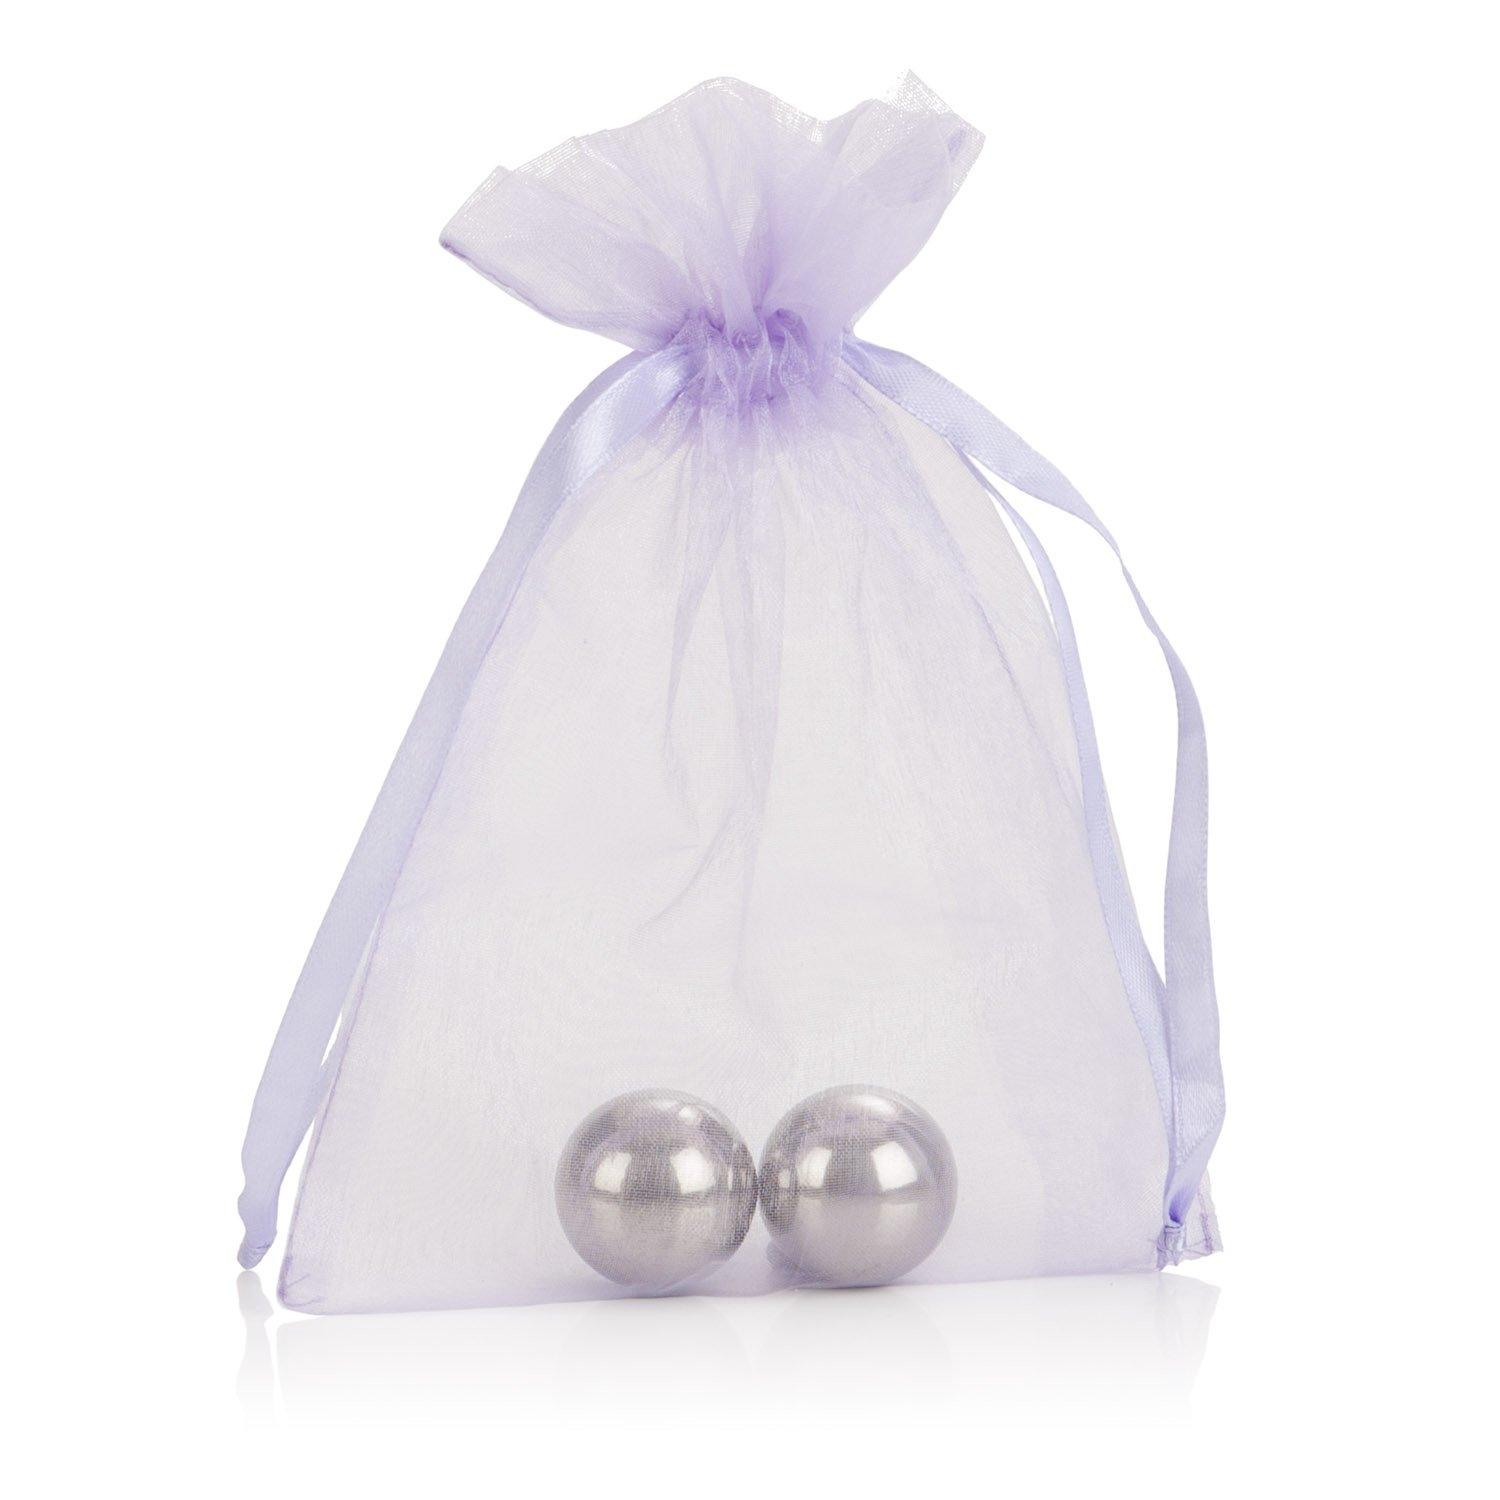 Amazon.com: CalExotics Weighted Orgasm Balls - Metallic Ben Wa Vaginal Kegel Weights - Pelvic Floor Exercise - Adult Sex Toys - Silver: Health & Personal ...